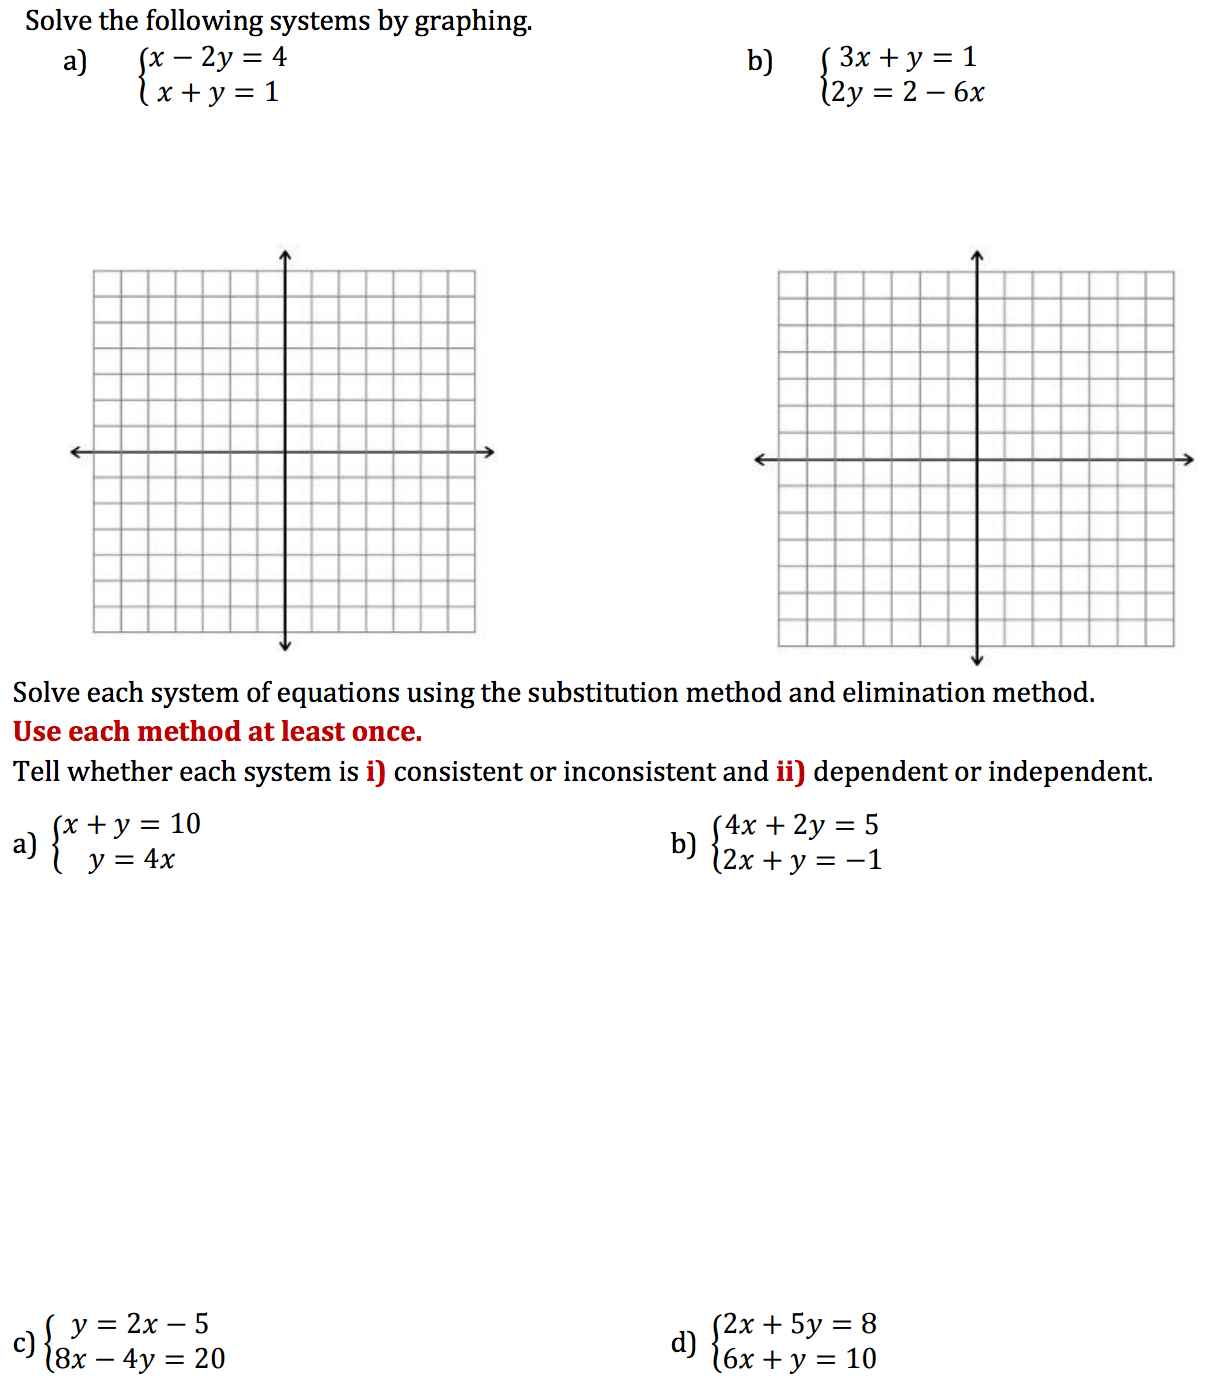 worksheet Solving Systems Of Equations By Graphing Duliziyou – Solving System of Equations by Graphing Worksheet